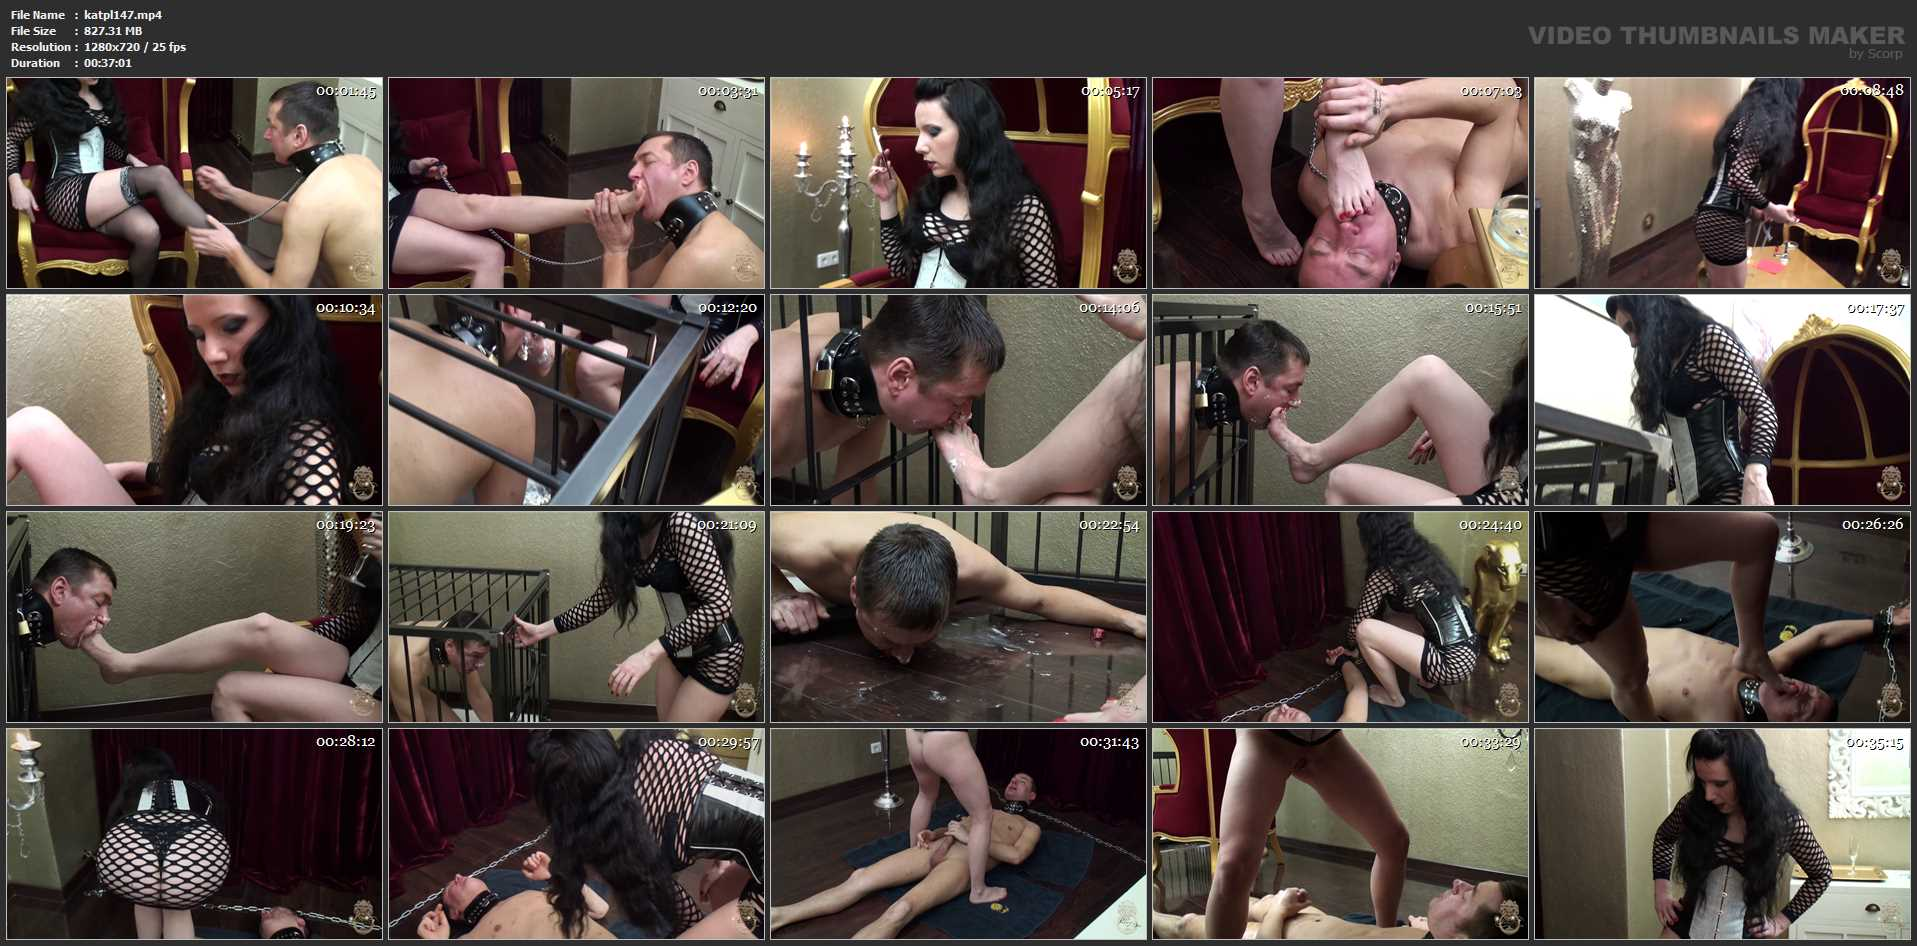 LADY LARA In Scene: FeeTish Dinner - KATES-PALACE - HD/720p/MP4